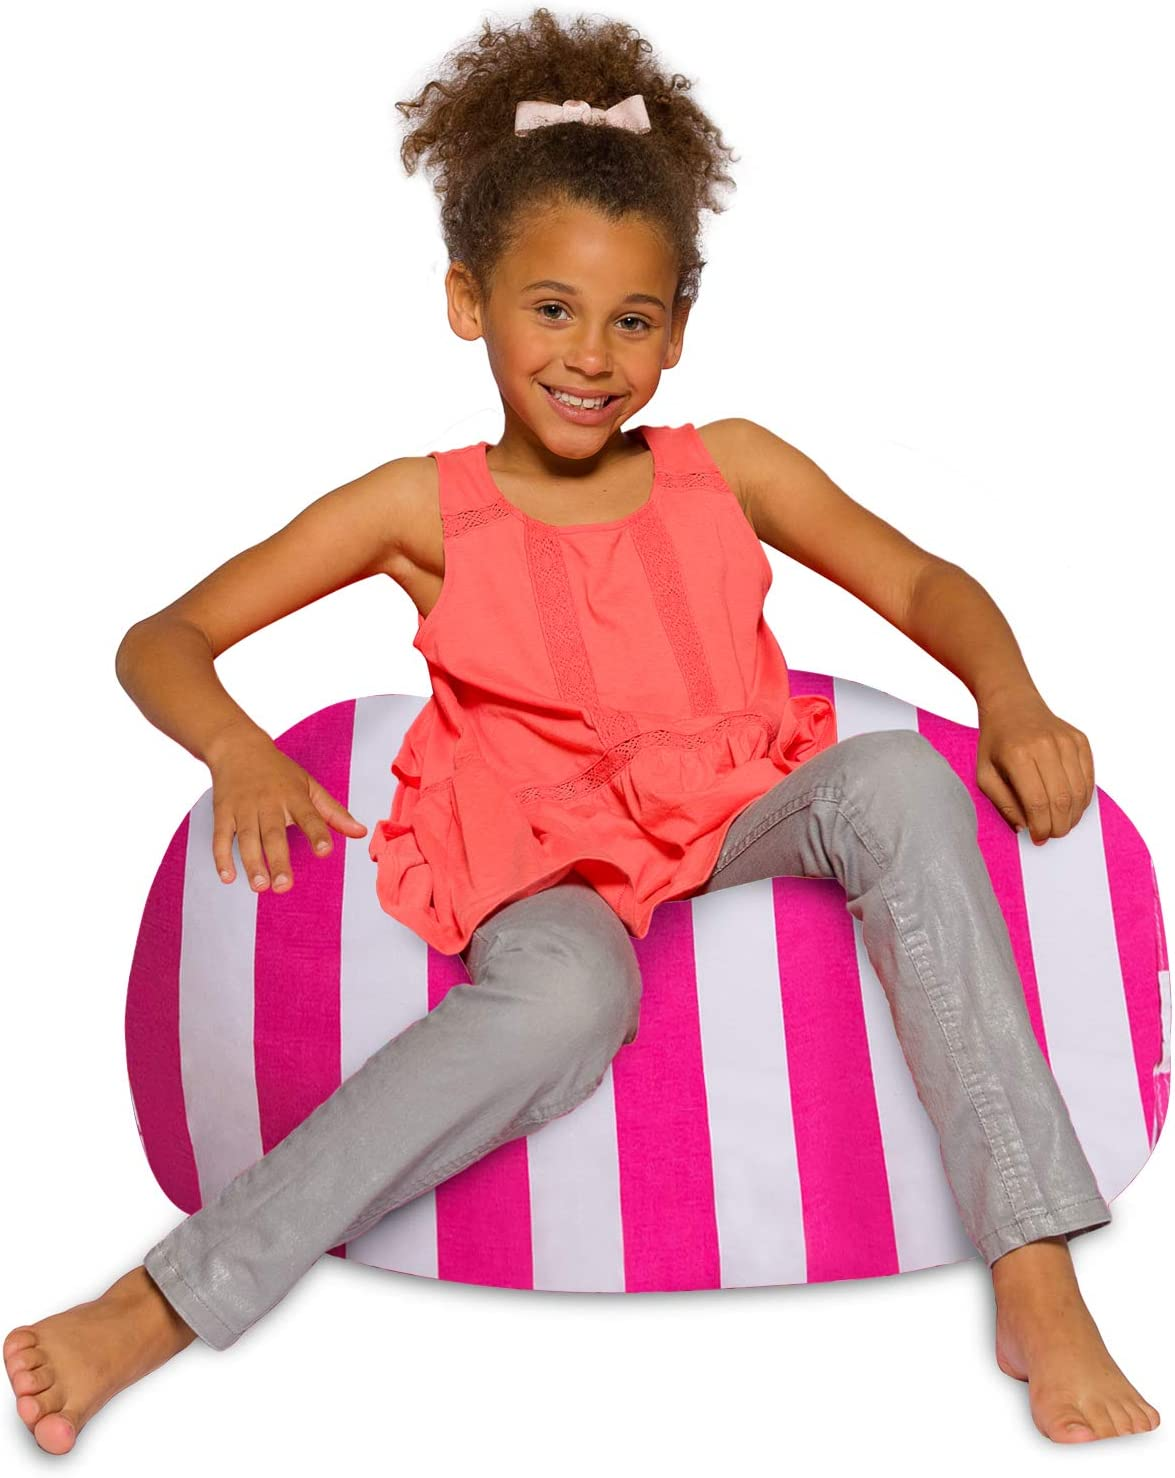 Posh Creations Bean Bag Chair for Kids, Teens, and Adults Includes Removable and Machine Washable Cover, 27in - Medium, Canvas Stripes Pink and White